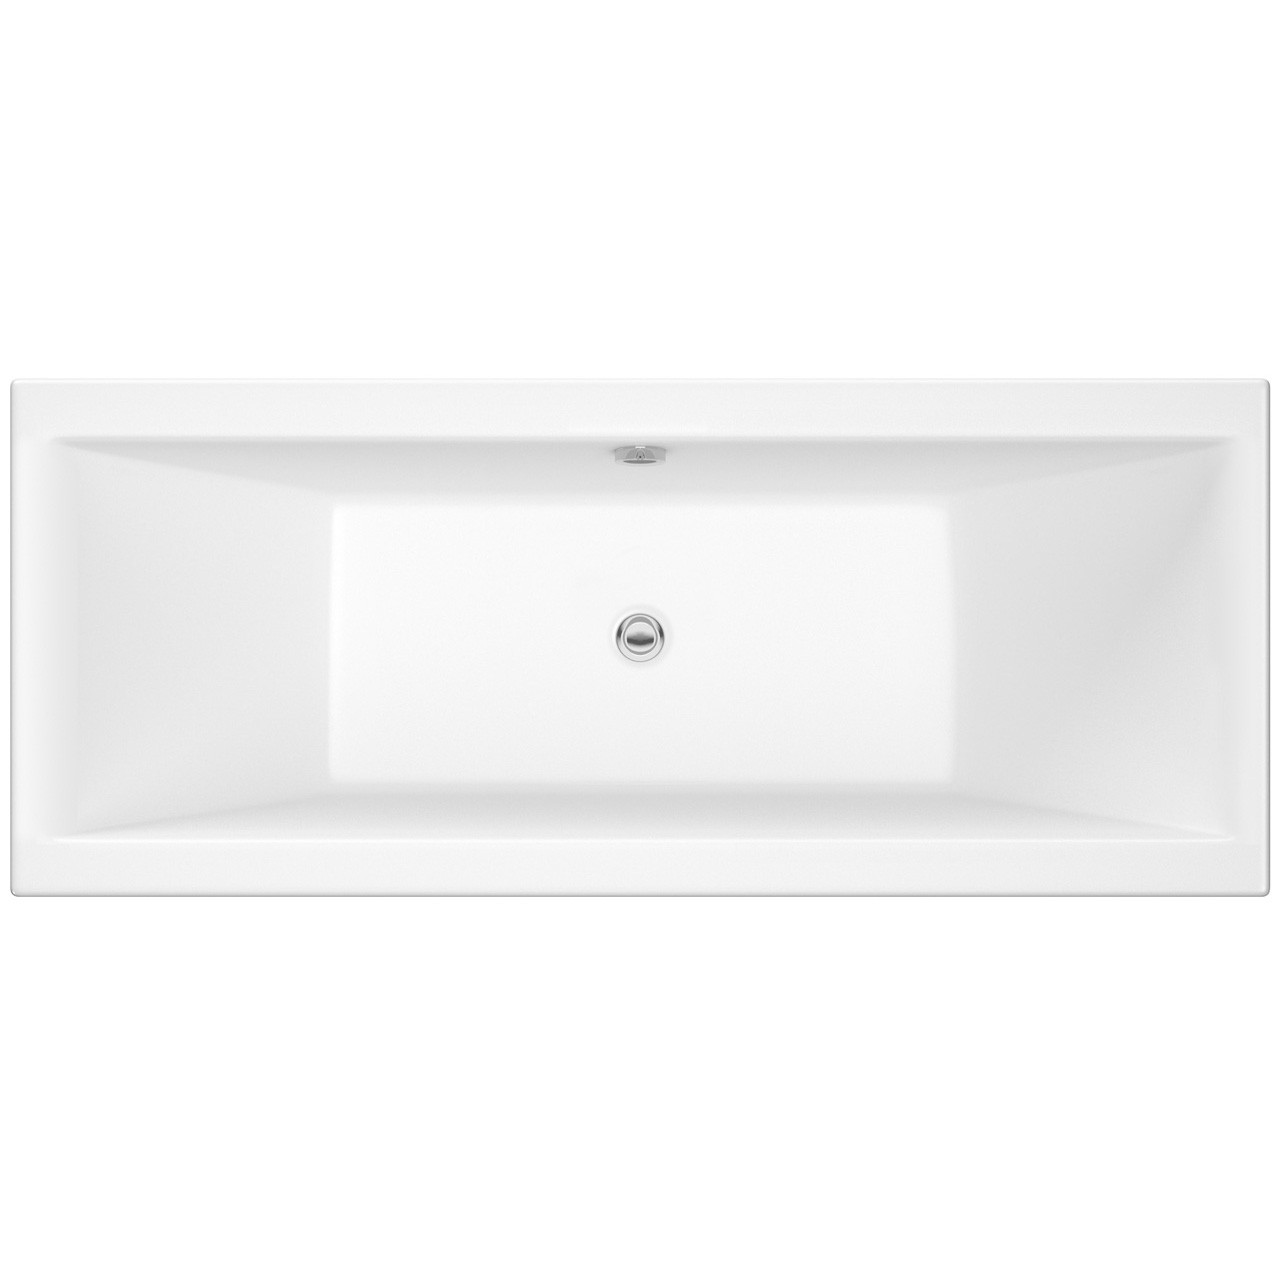 Premier Square Double Ended Bath and Leg Set 1700mm x 700mm - BDE006